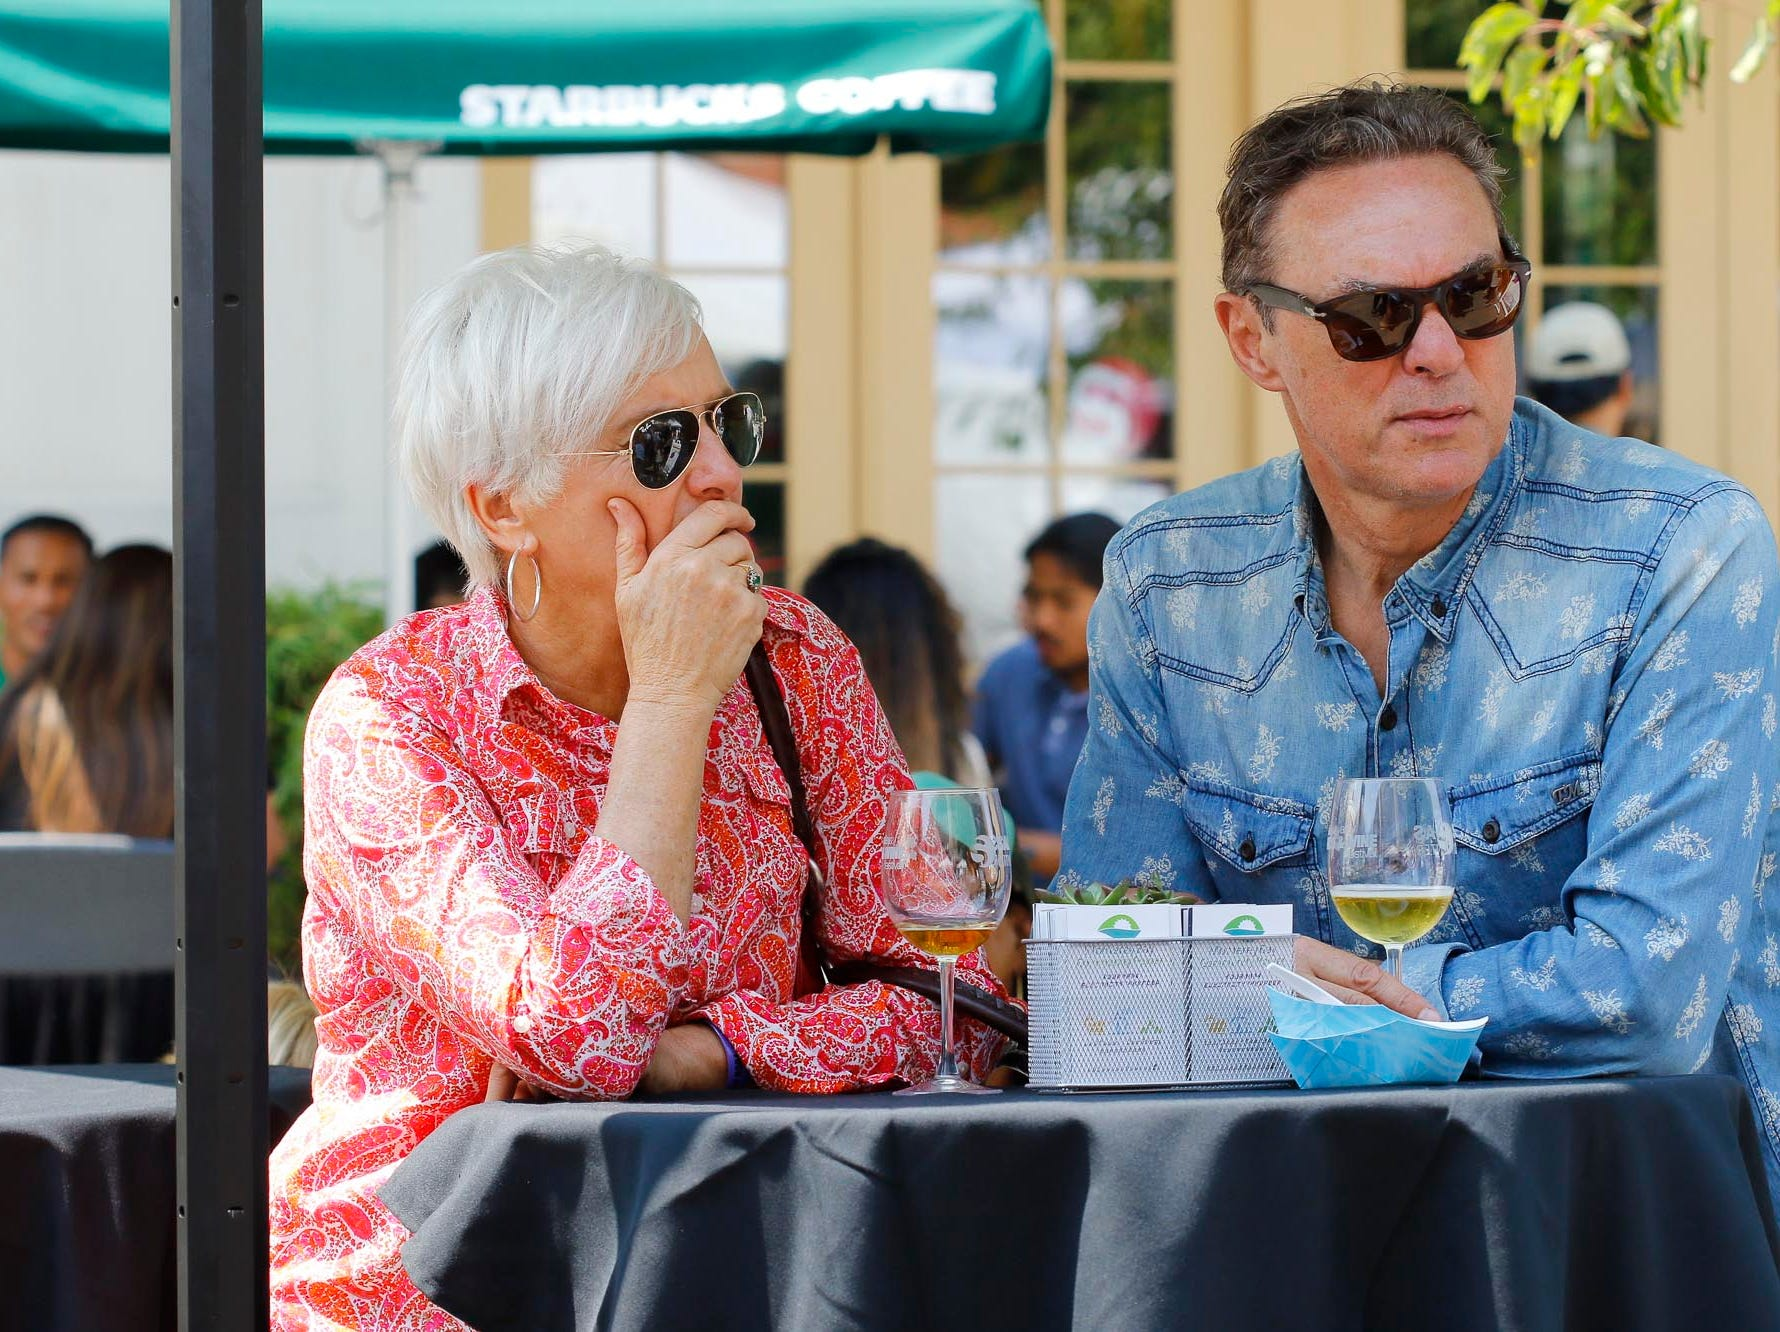 Two attendees look on as they pause from sampling during the 2018 Salinas Valley Food and Wine Festival which takes place on Main Street in Old Town Salinas on Saturday, August 11, 2018.